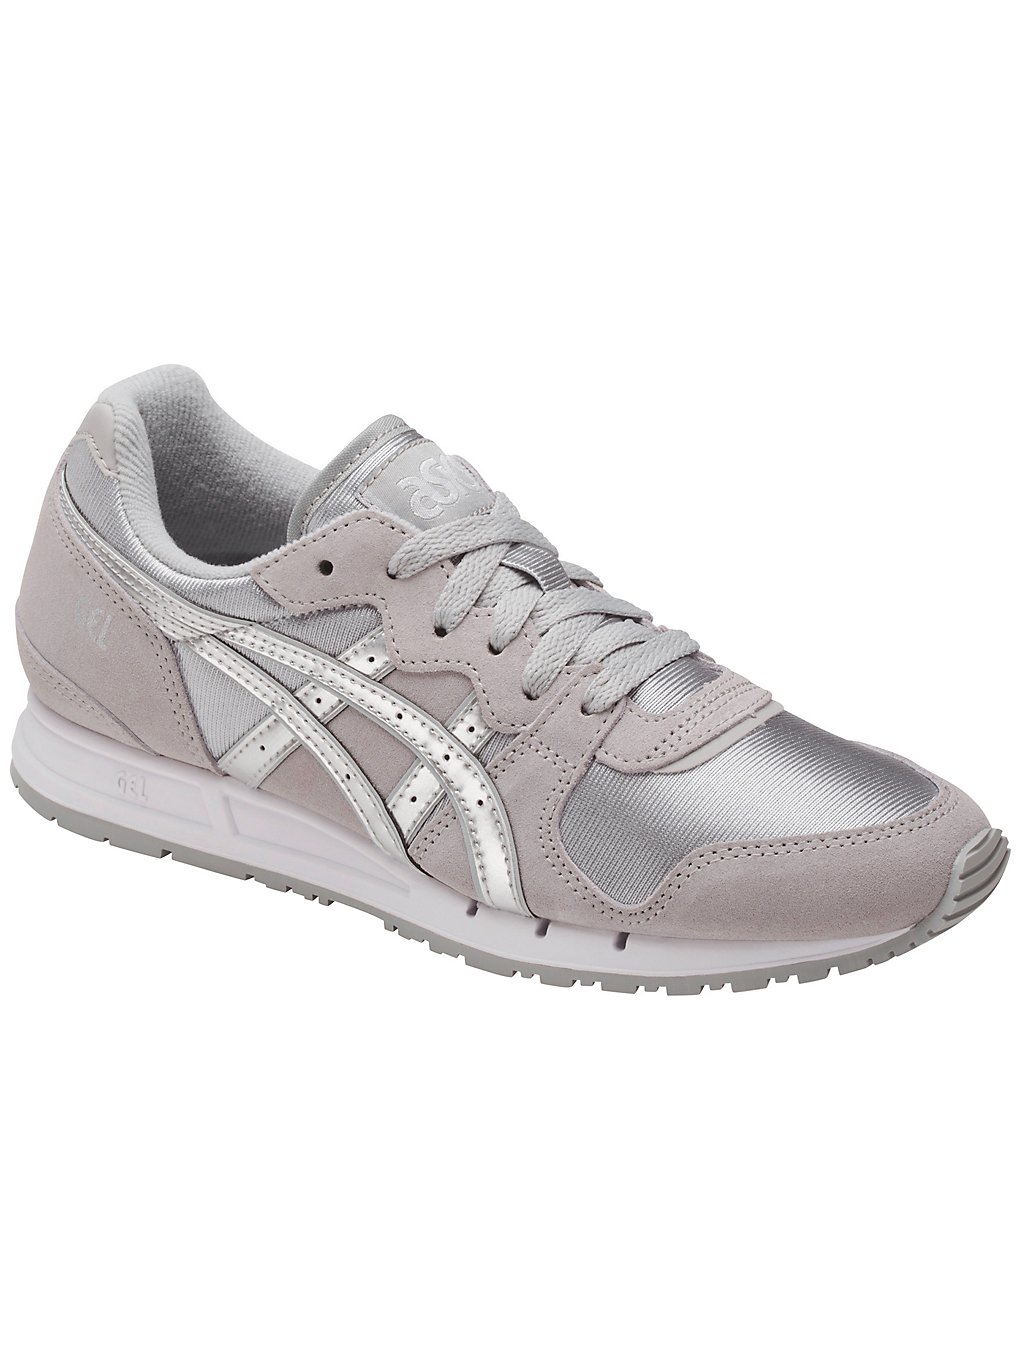 Image of Asics Gel-Movimentum Sneakers Women